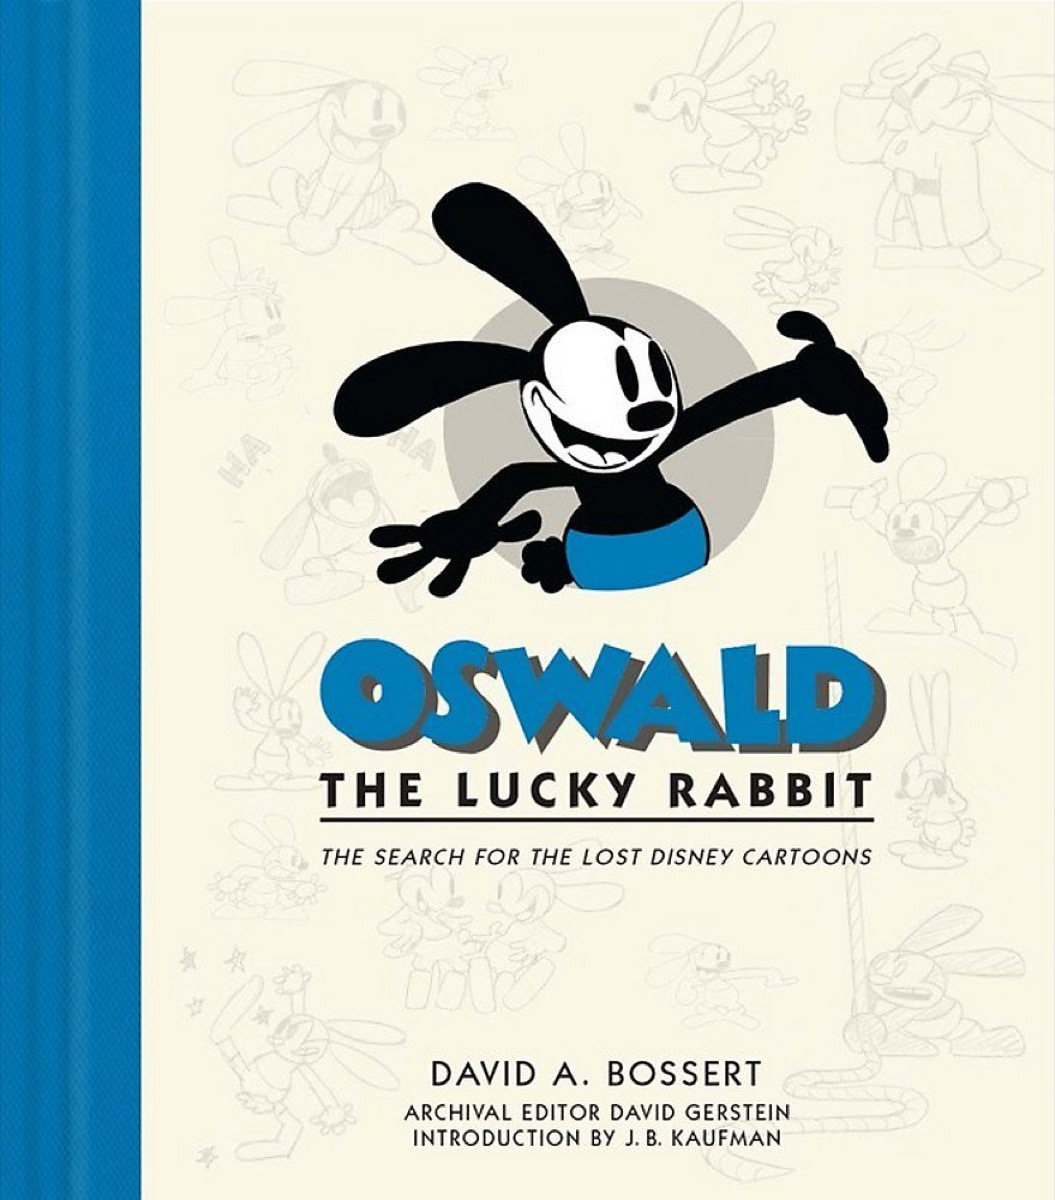 oswald the lucky rabbit book cover